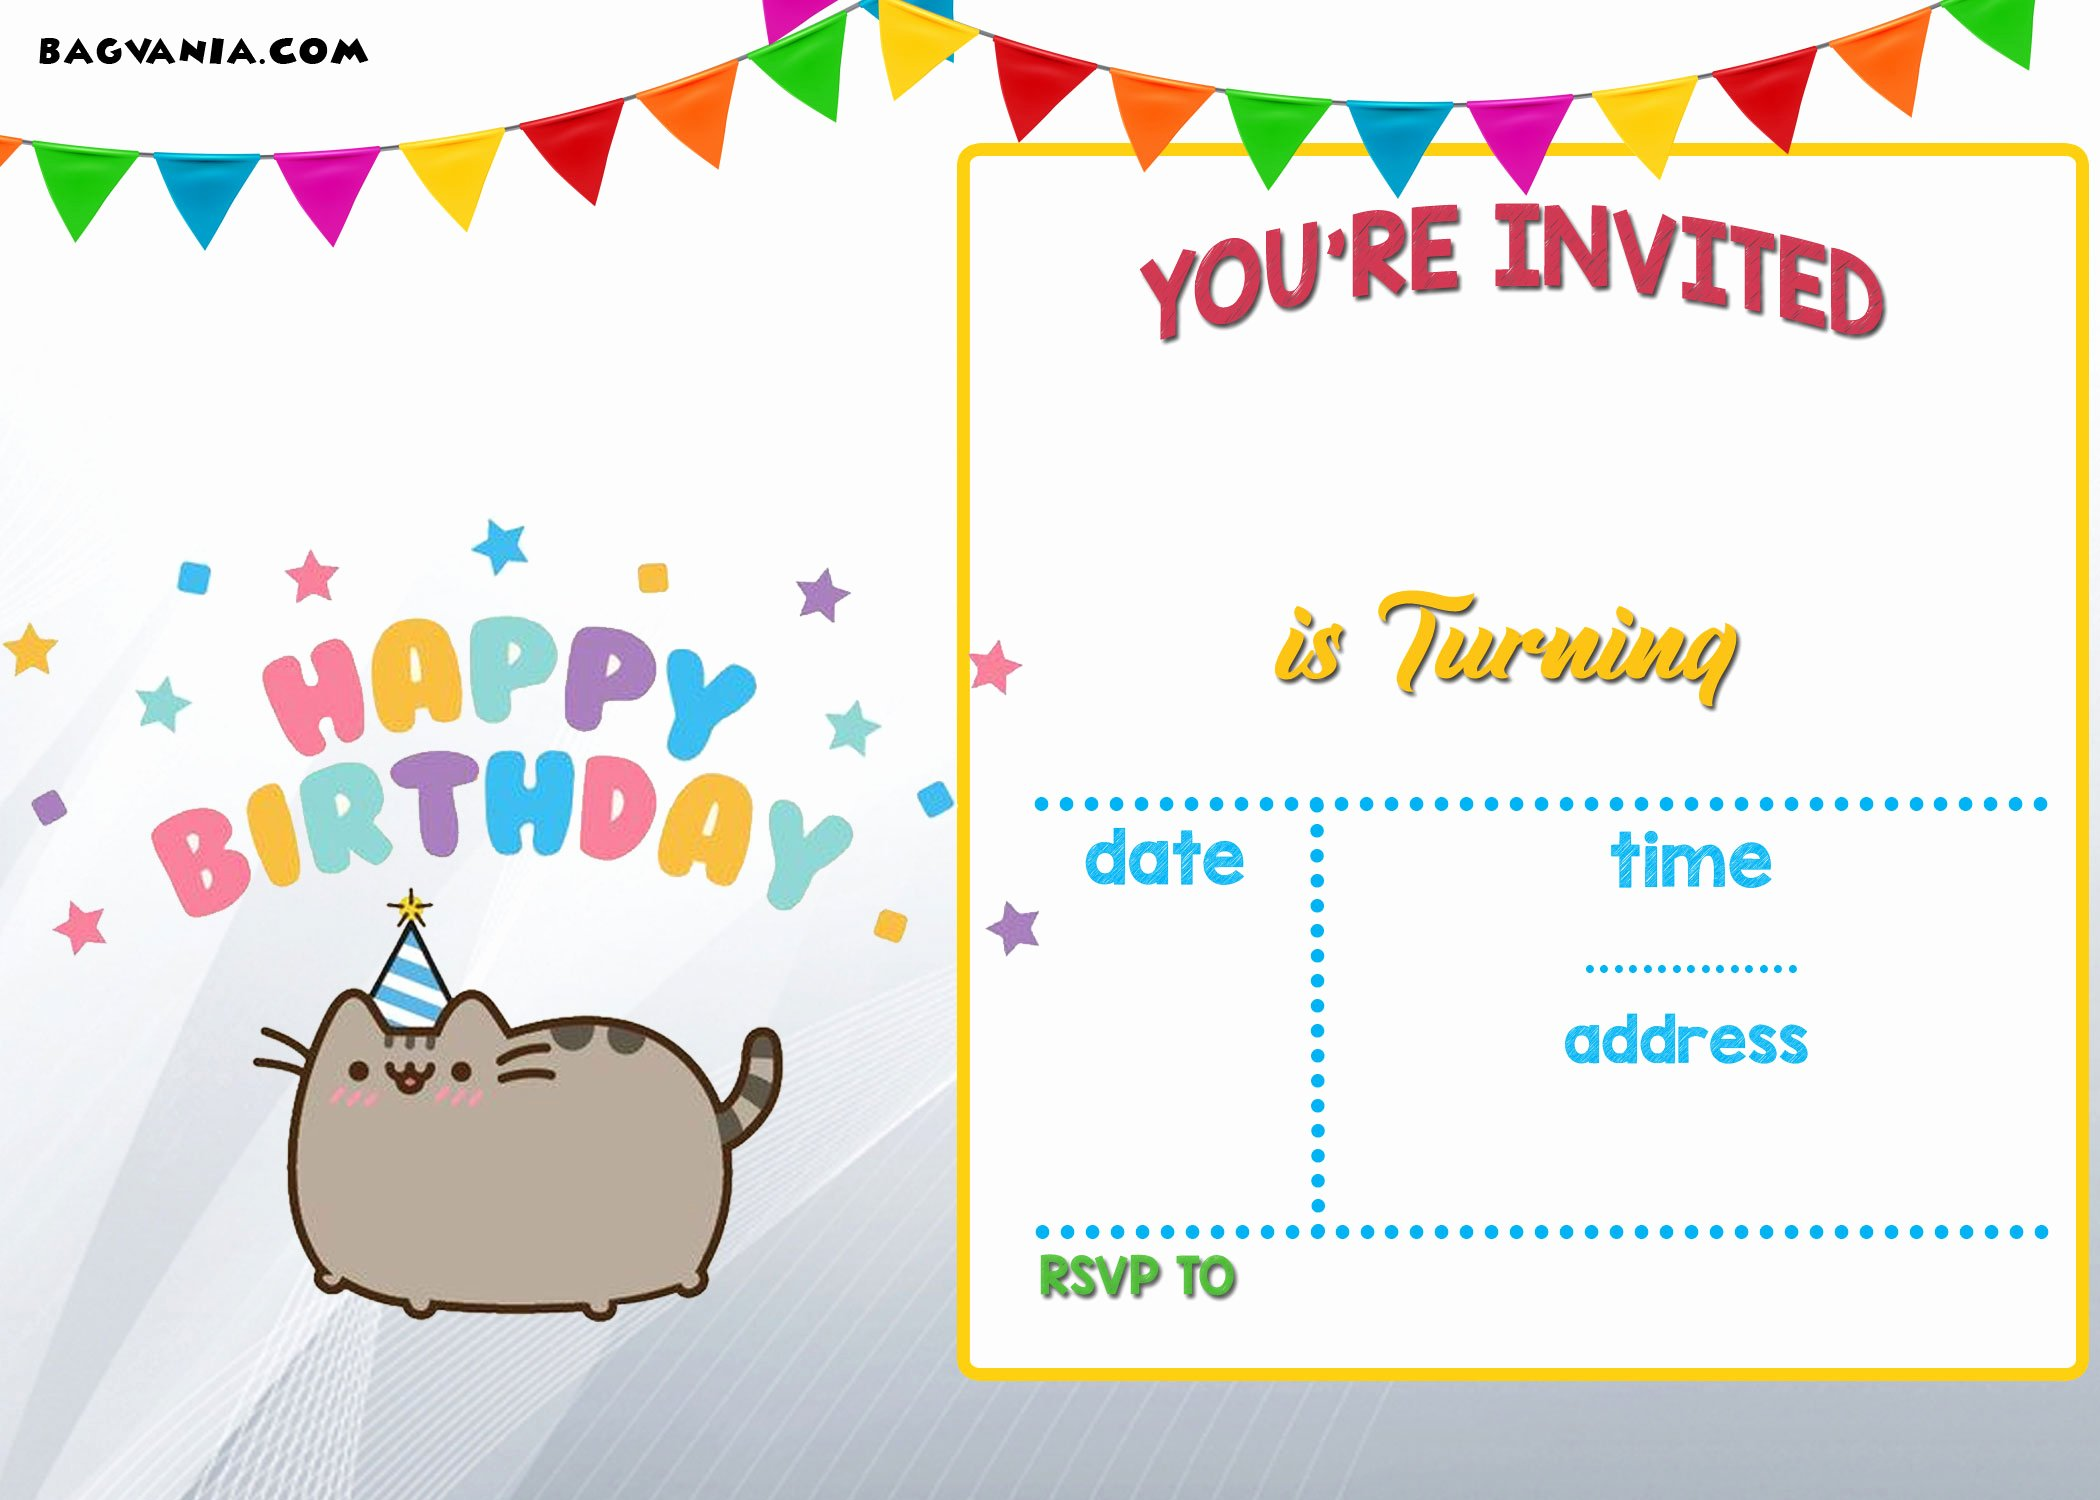 Printable Party Invitation Template Best Of Free Printable Kids Birthday Invitations – Bagvania Free